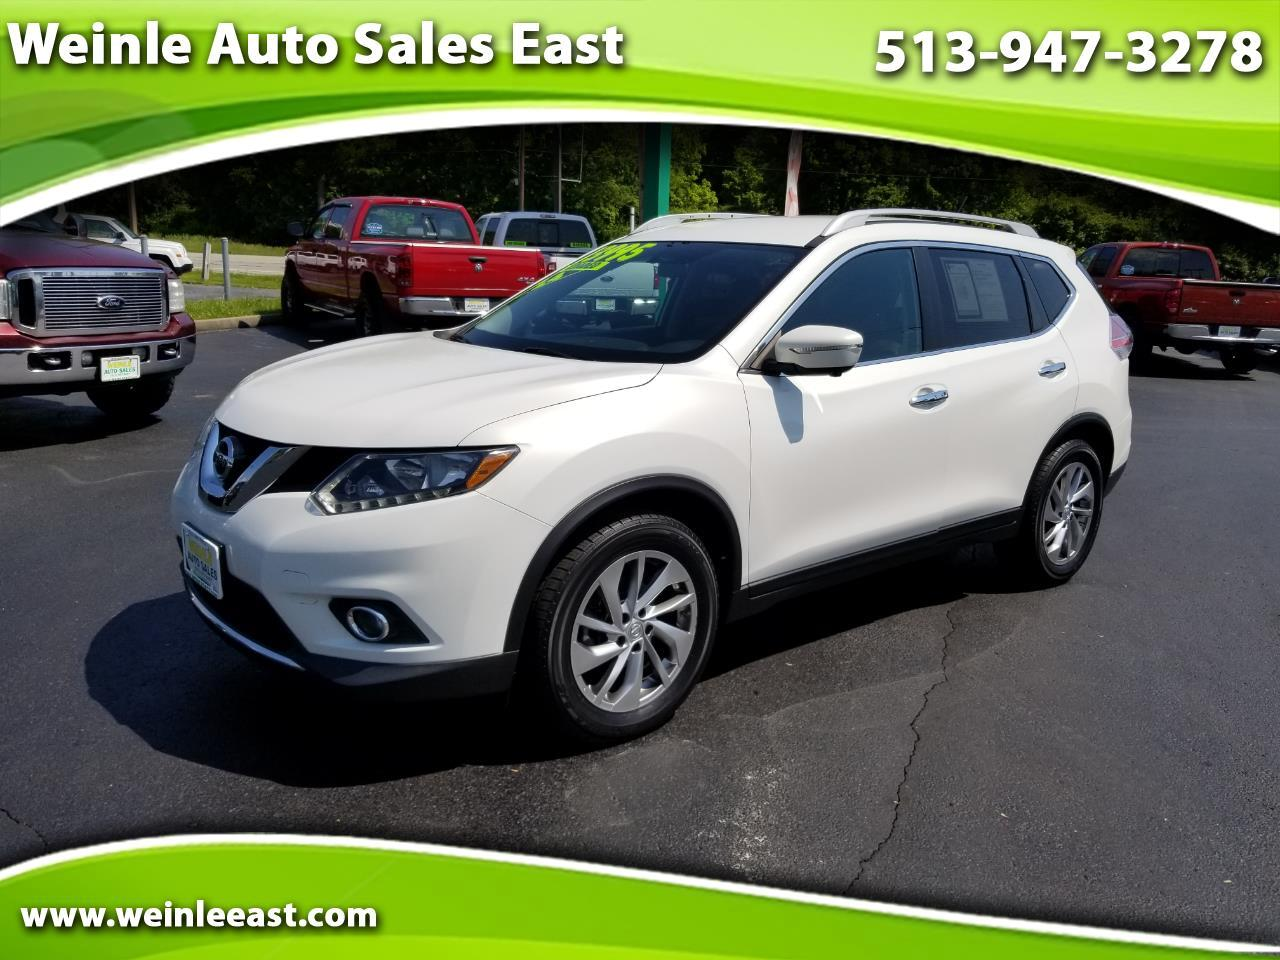 2014 Nissan Rogue FWD 4dr SL